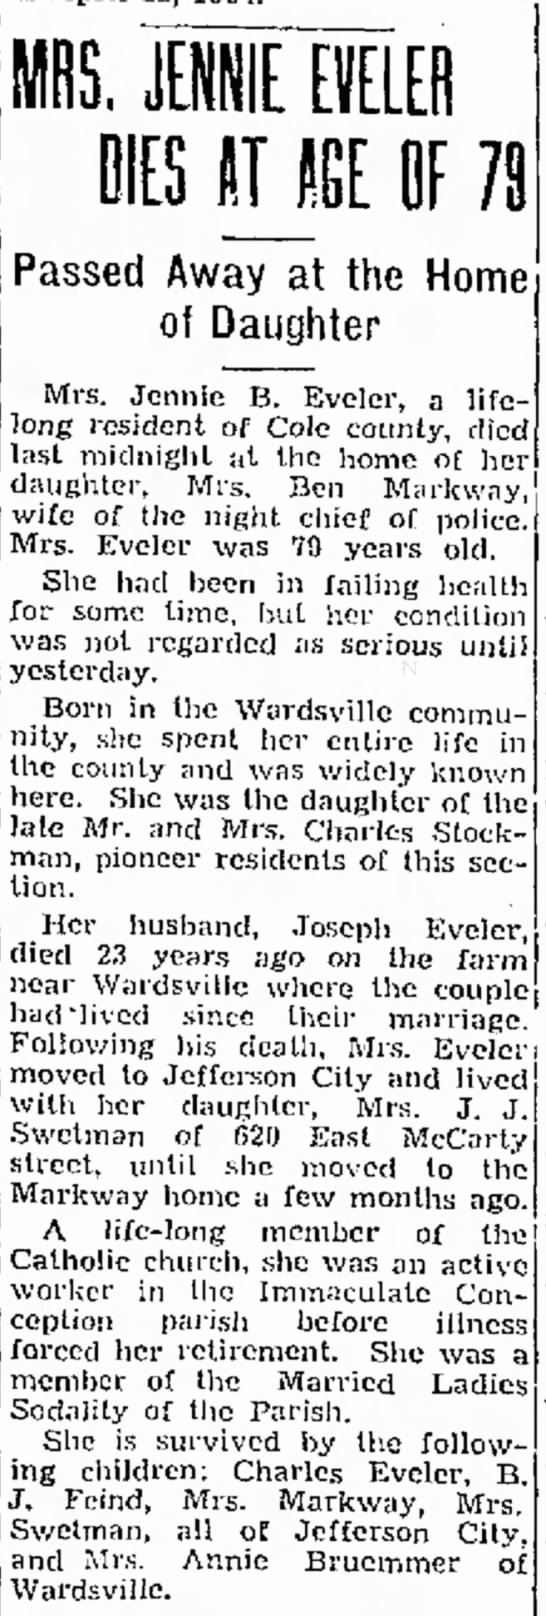 Jennie Stockman Eveler Obit - it of and yesterday. 12 wife of (he night chief...